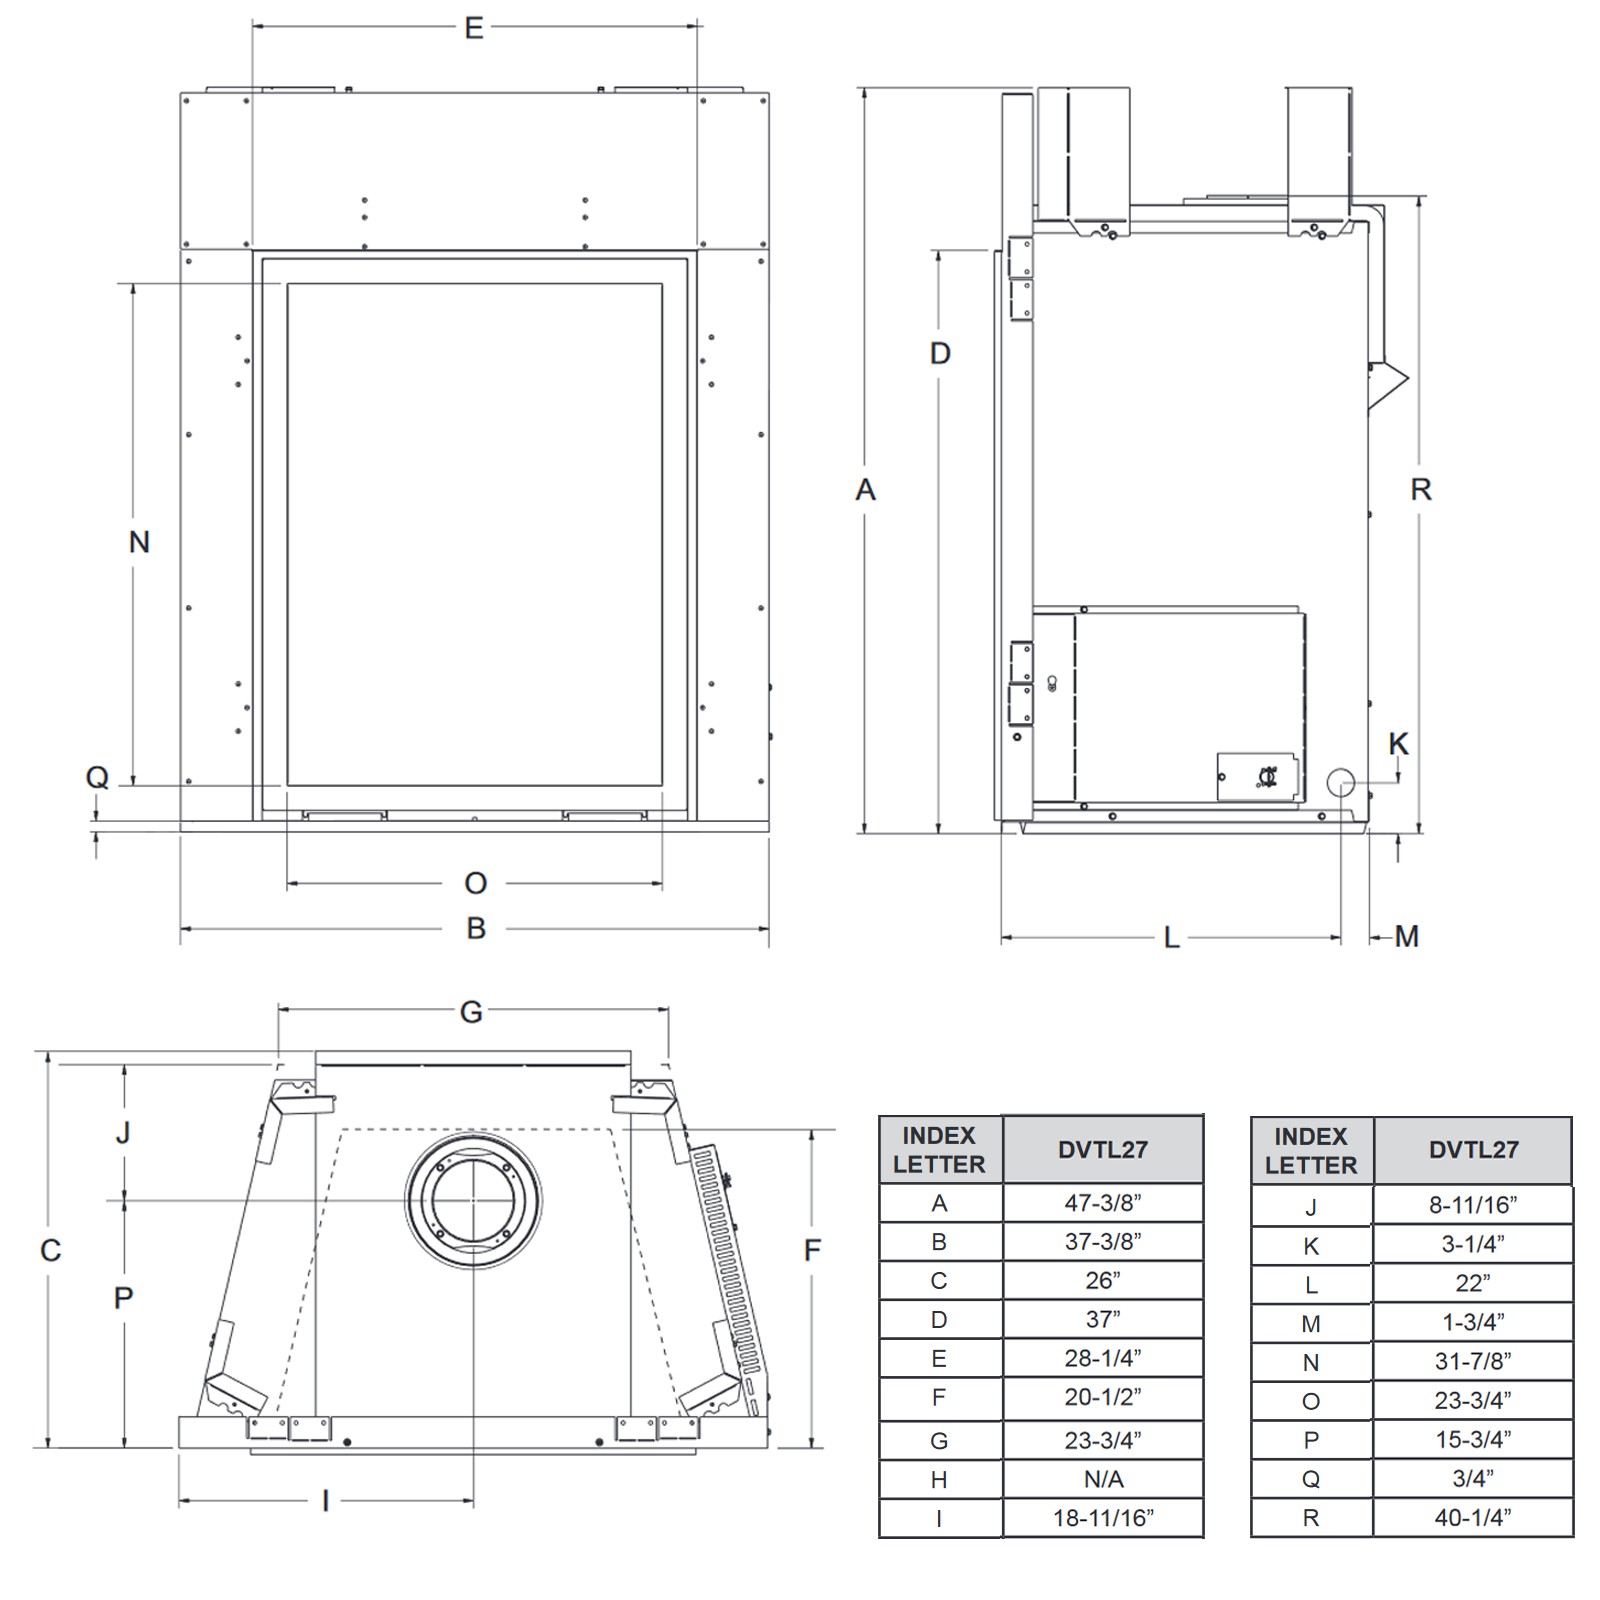 DVTL27 Technical Drawing 1